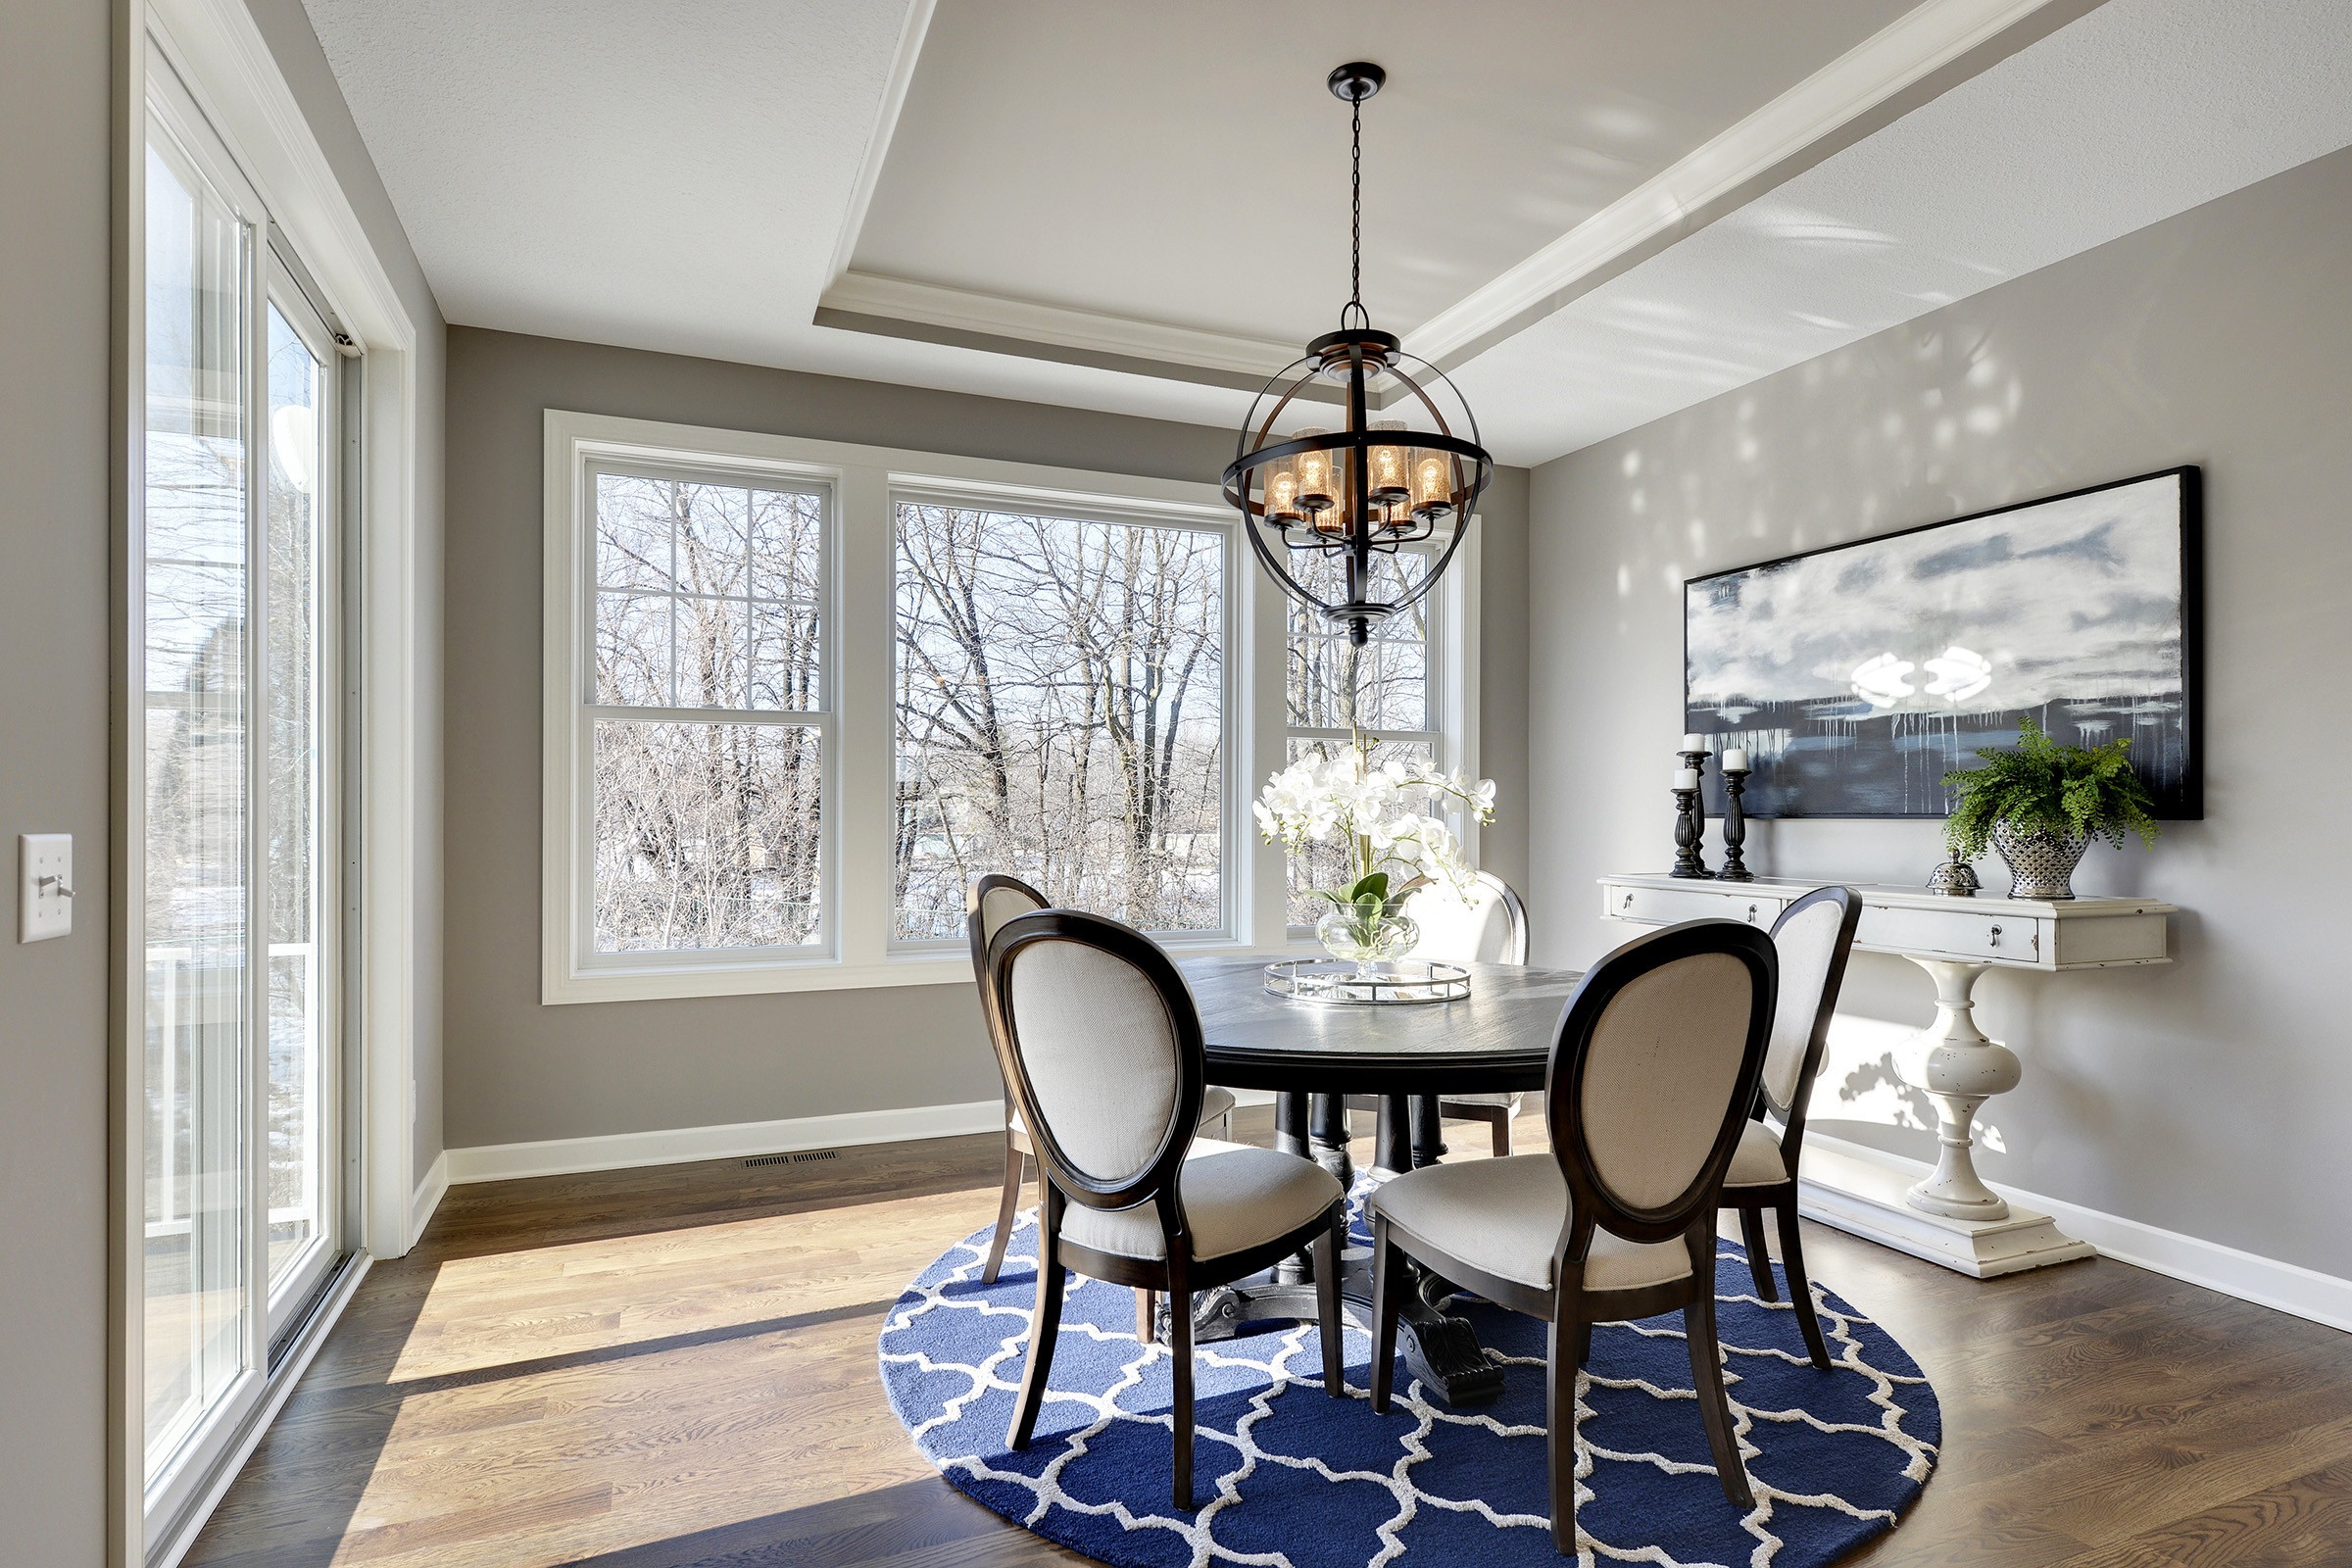 The white arrangement of flowers go well with the blue accent pieces in this dining room.